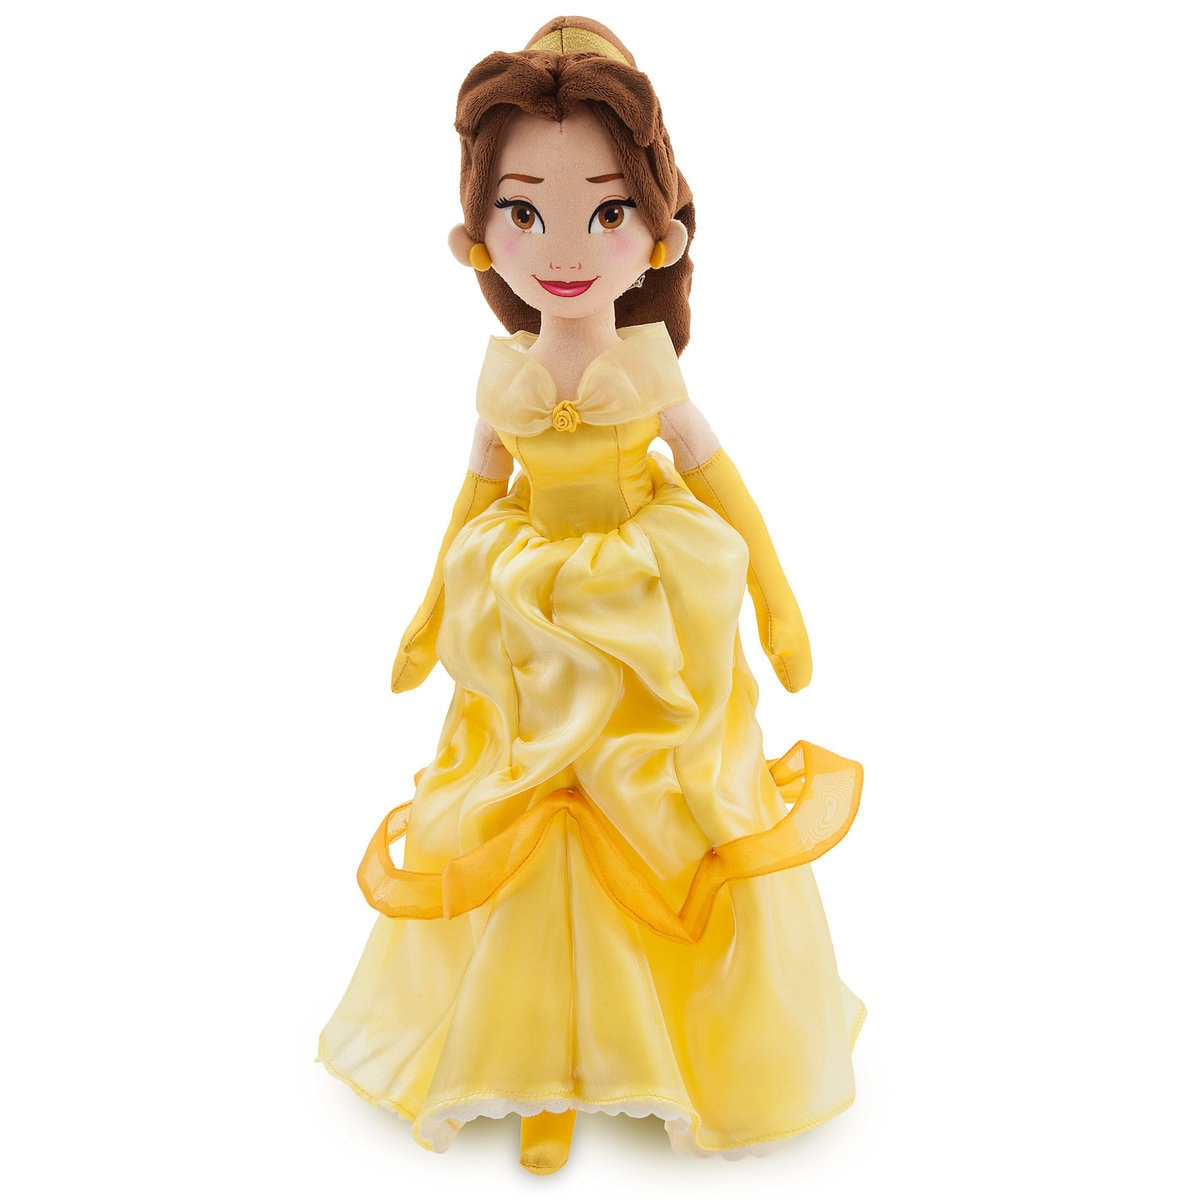 65bae687e95b Product Image of Belle Plush Doll - Beauty and the Beast - Medium - 19'